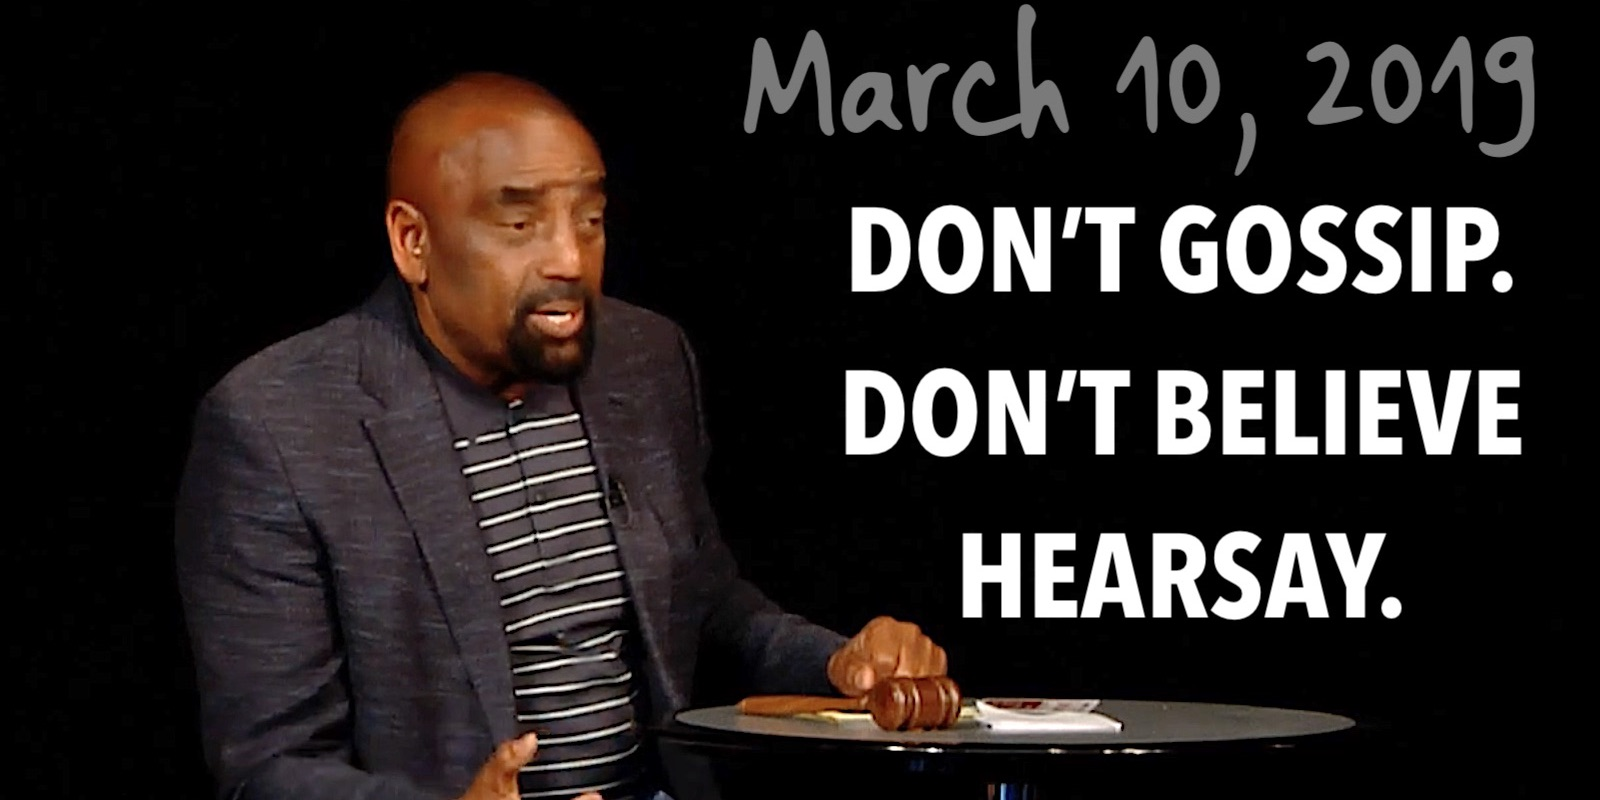 Church March 10: Don't Gossip